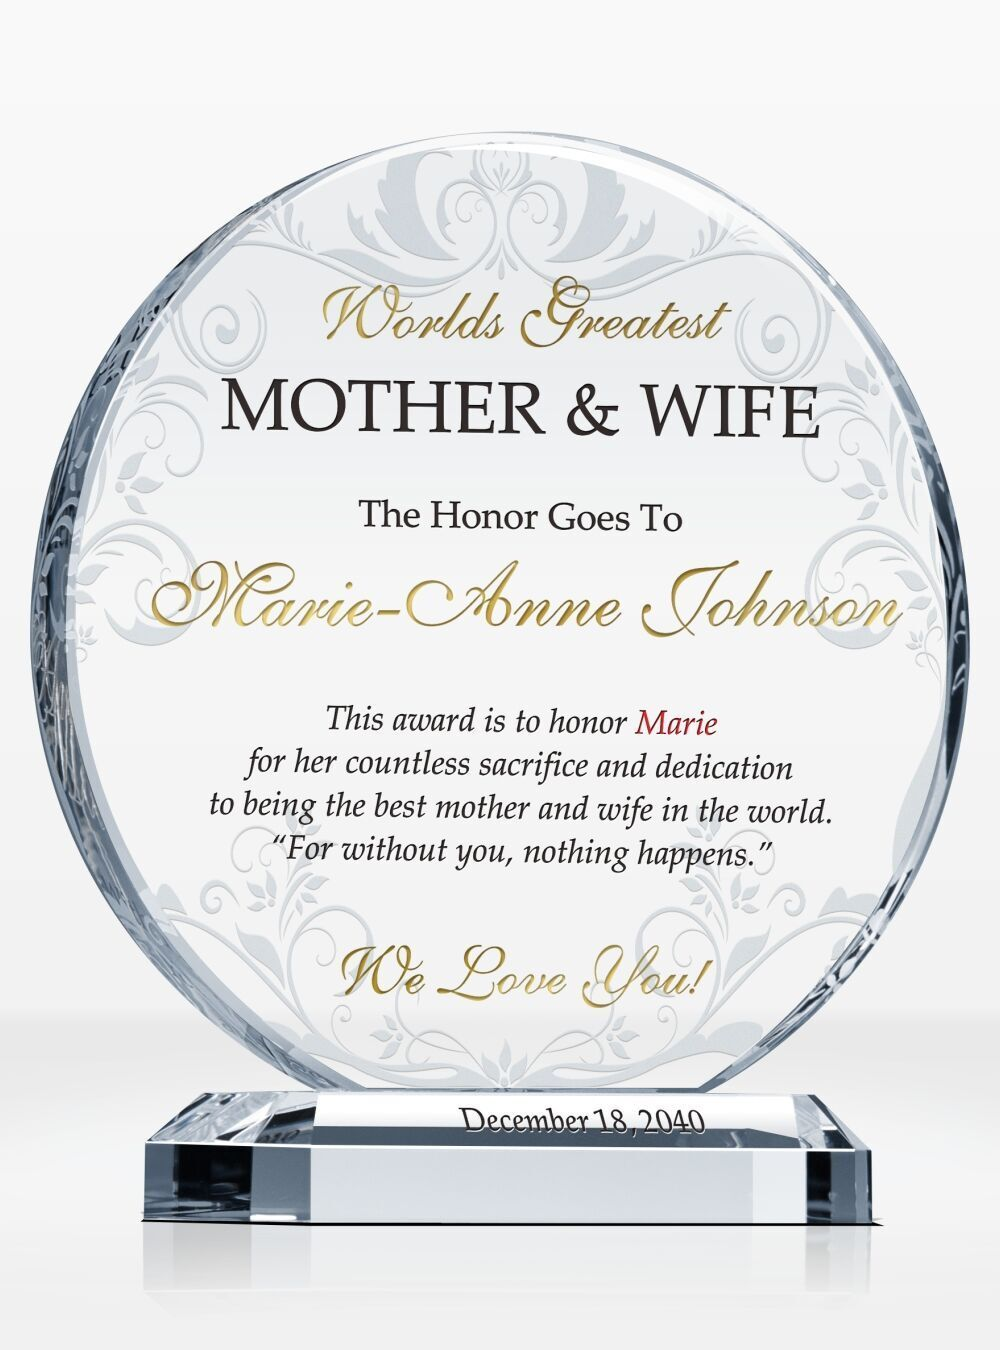 Best Wife Award Certificate Elegant Personalized Certificate For Worlds Best Wife With Frame Good Wife Best Boyfriend Funny Awards Certificates